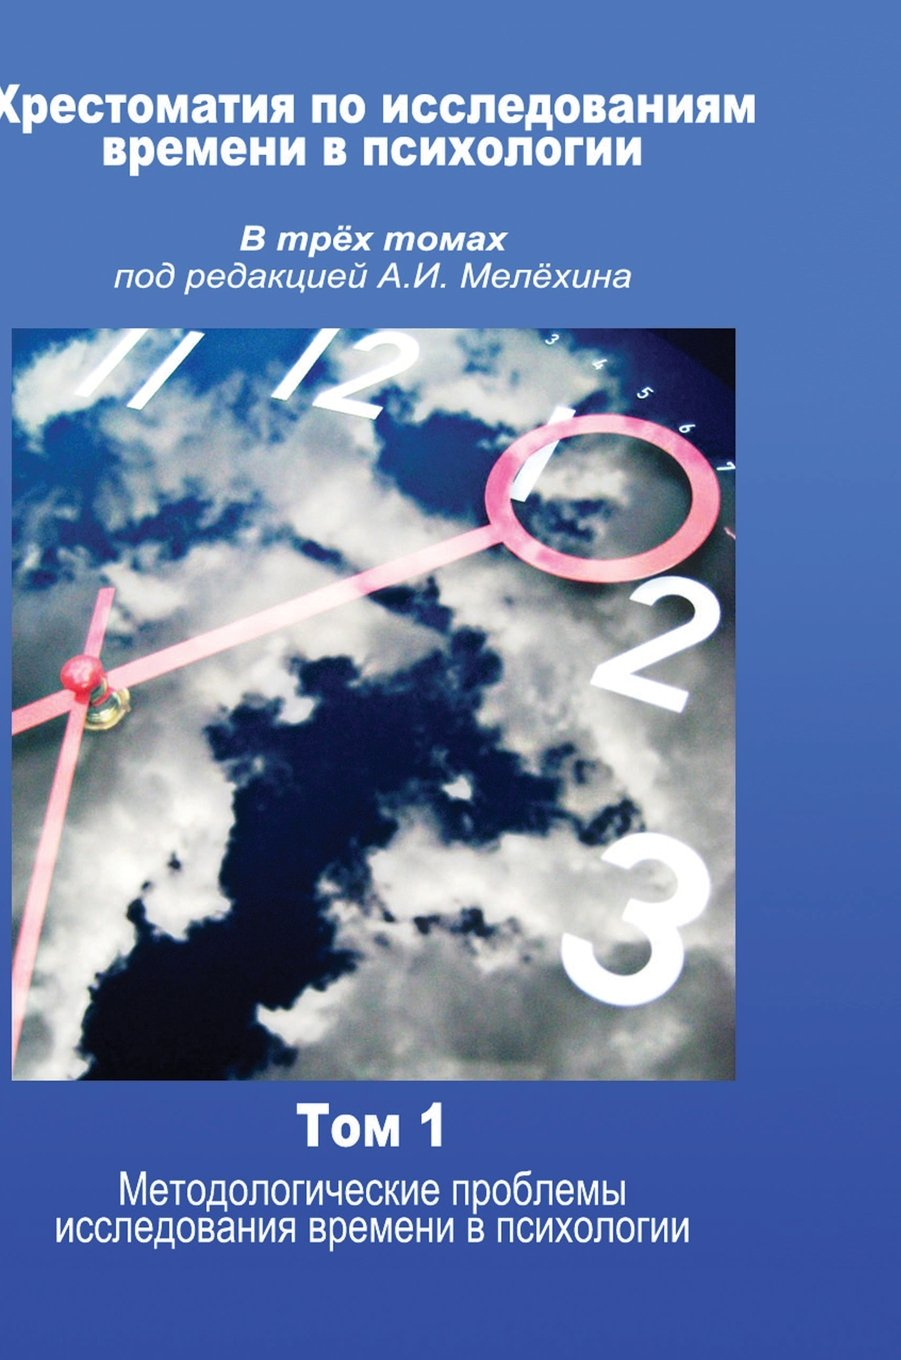 Reader Research in psychology time in three volumes, edited by AI Melohina. Volume 1 (Russian Edition) pdf